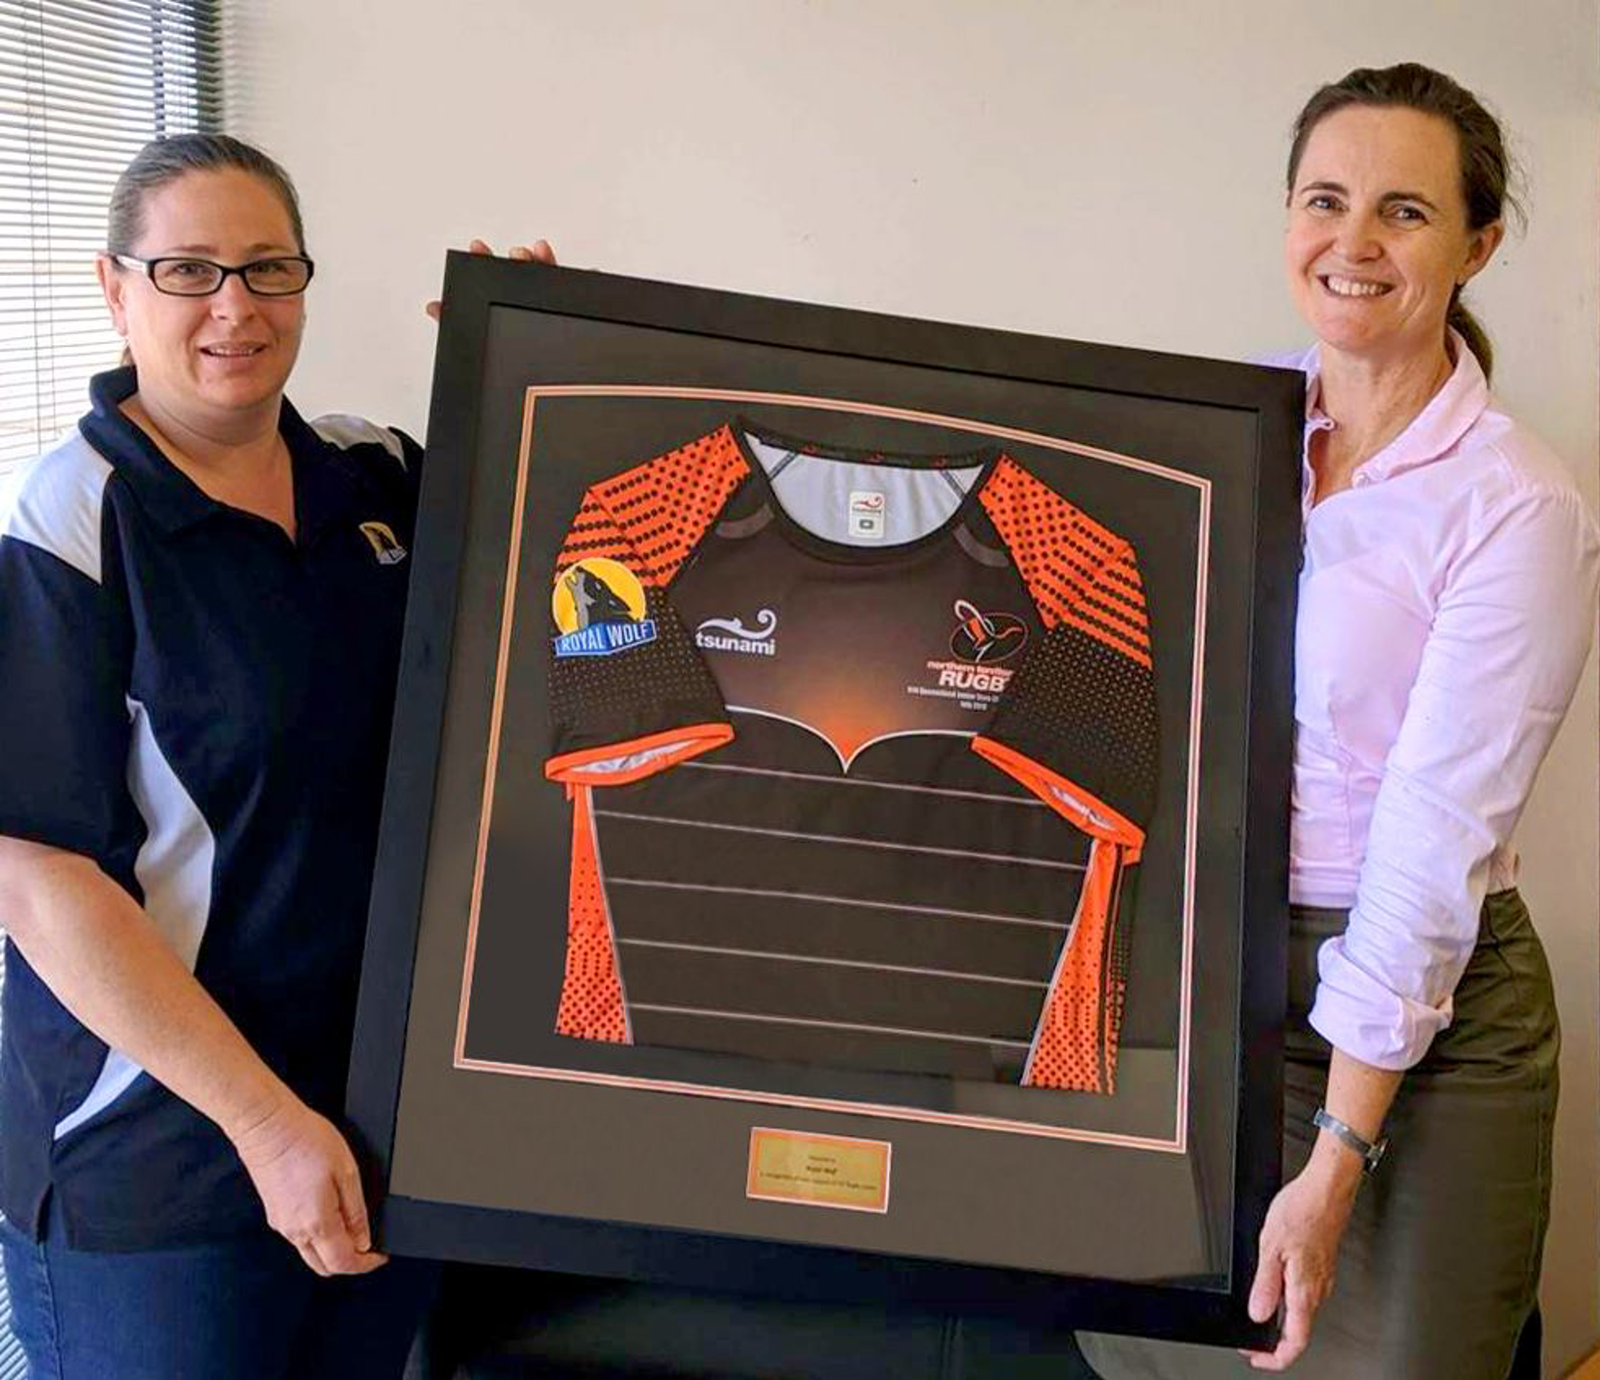 ROYAL WOLF SUPPORTS ANNUAL NORTHERN TERRITORY RUGBY HOTTEST 7s COMPETITION